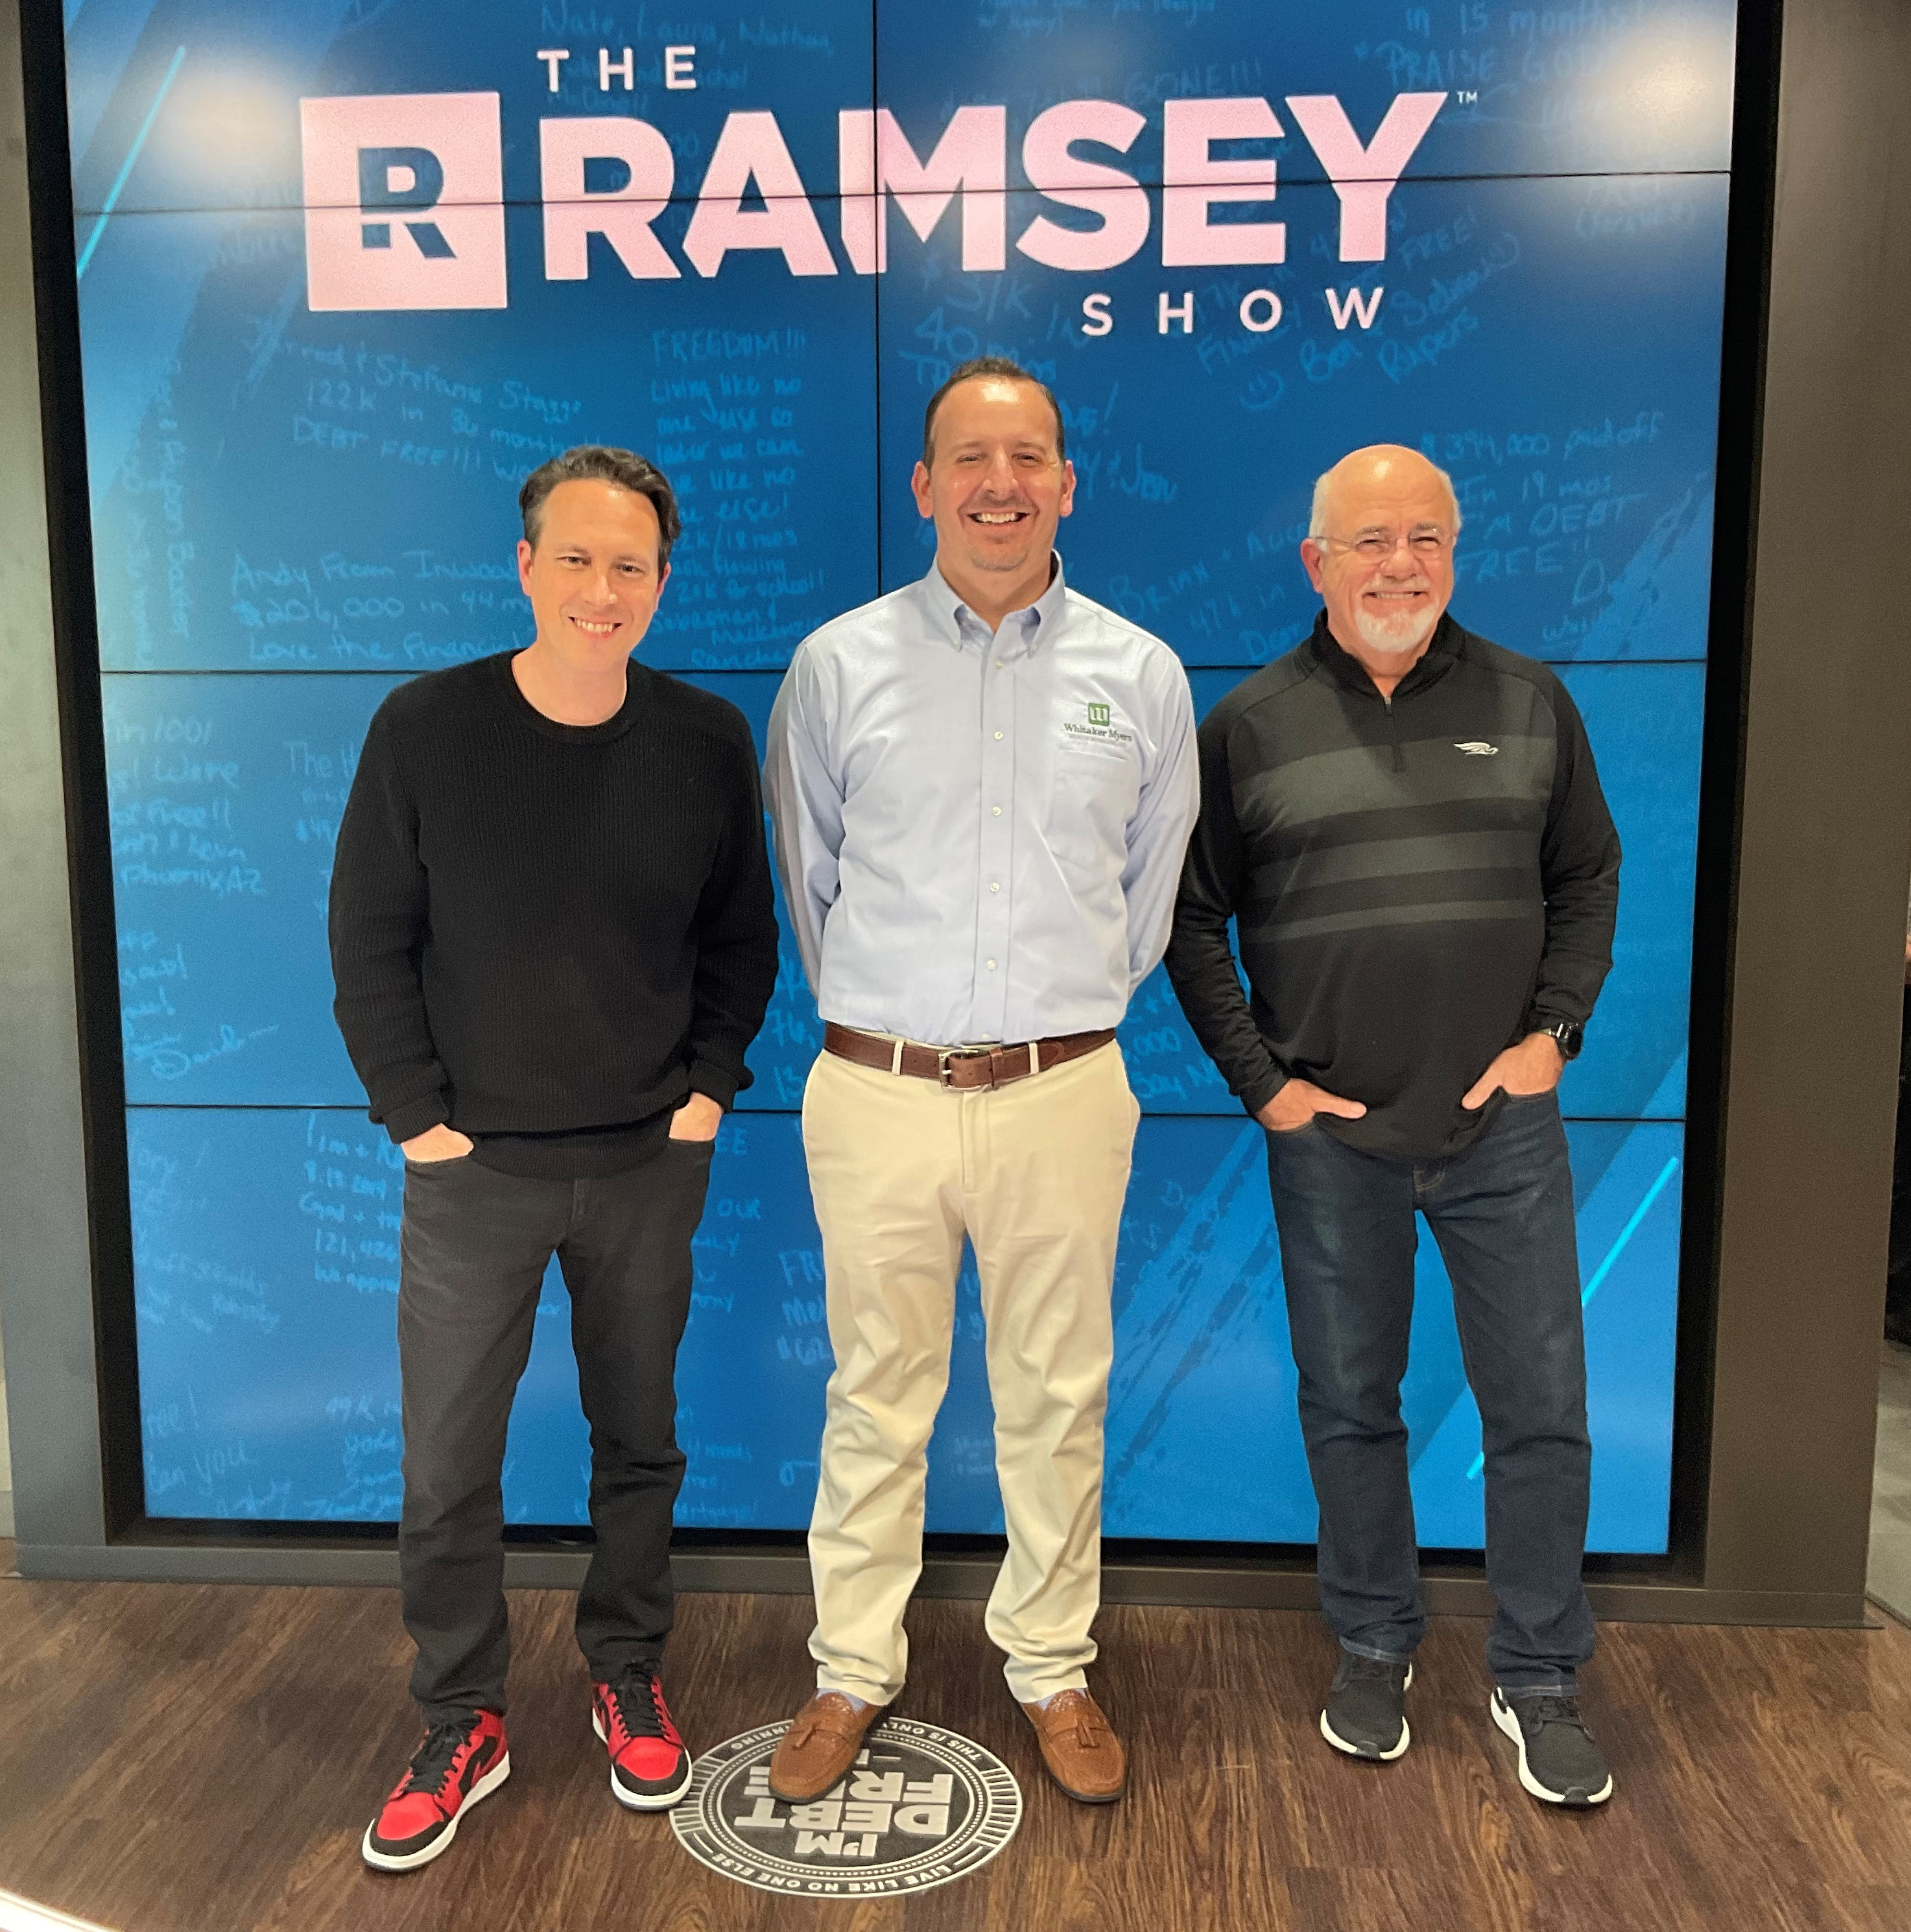 John-mark Young, financial advisor Millersburg OH